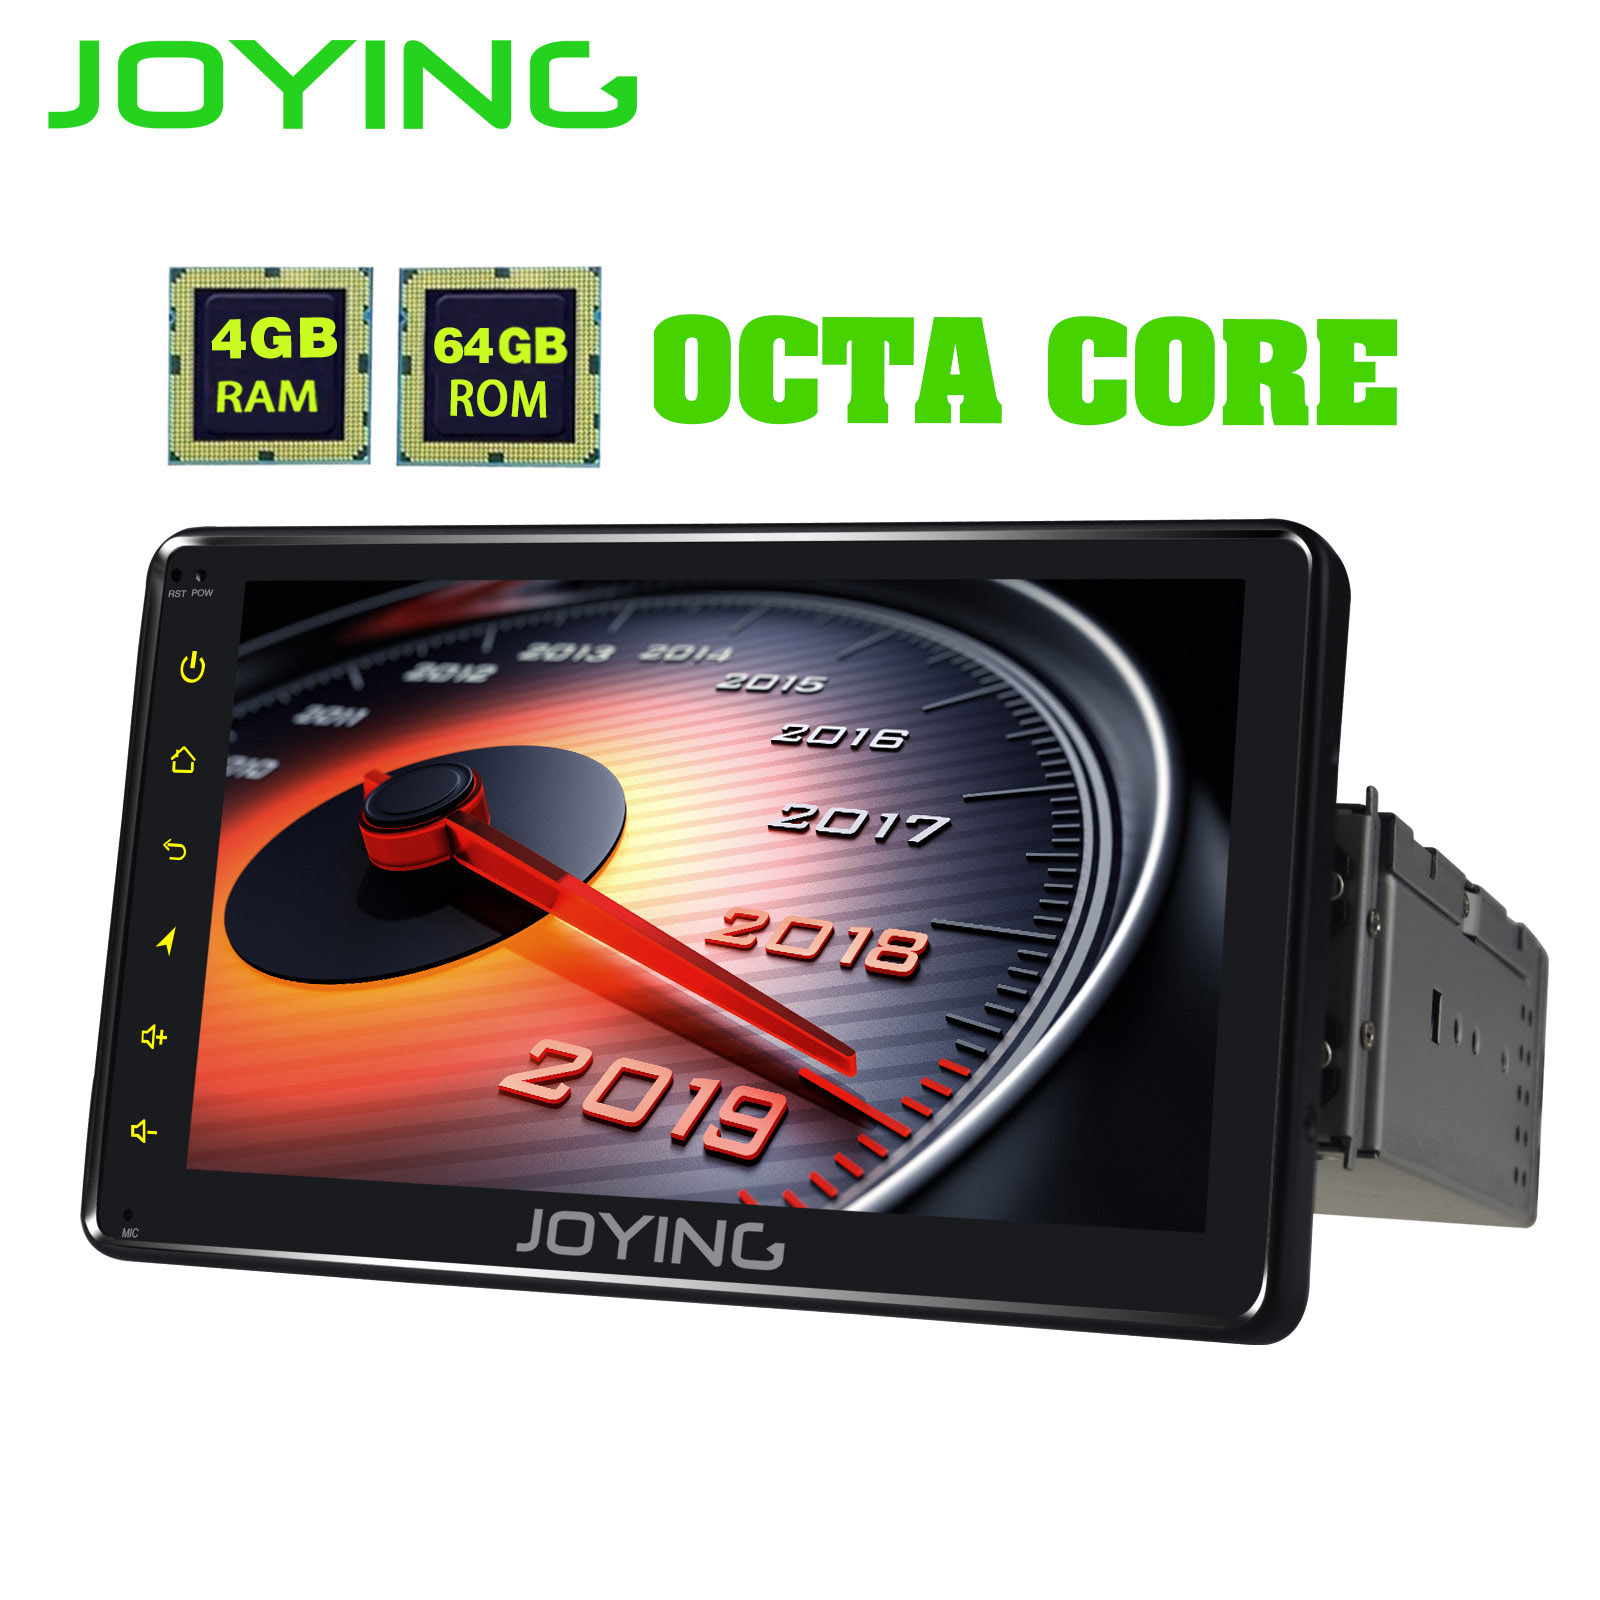 JOYING simple 1 DIN Android 8.1 universel autoradio Octa Core unité de Navigation GPS 4 GB + 64 GB DSP support 4G HD écran